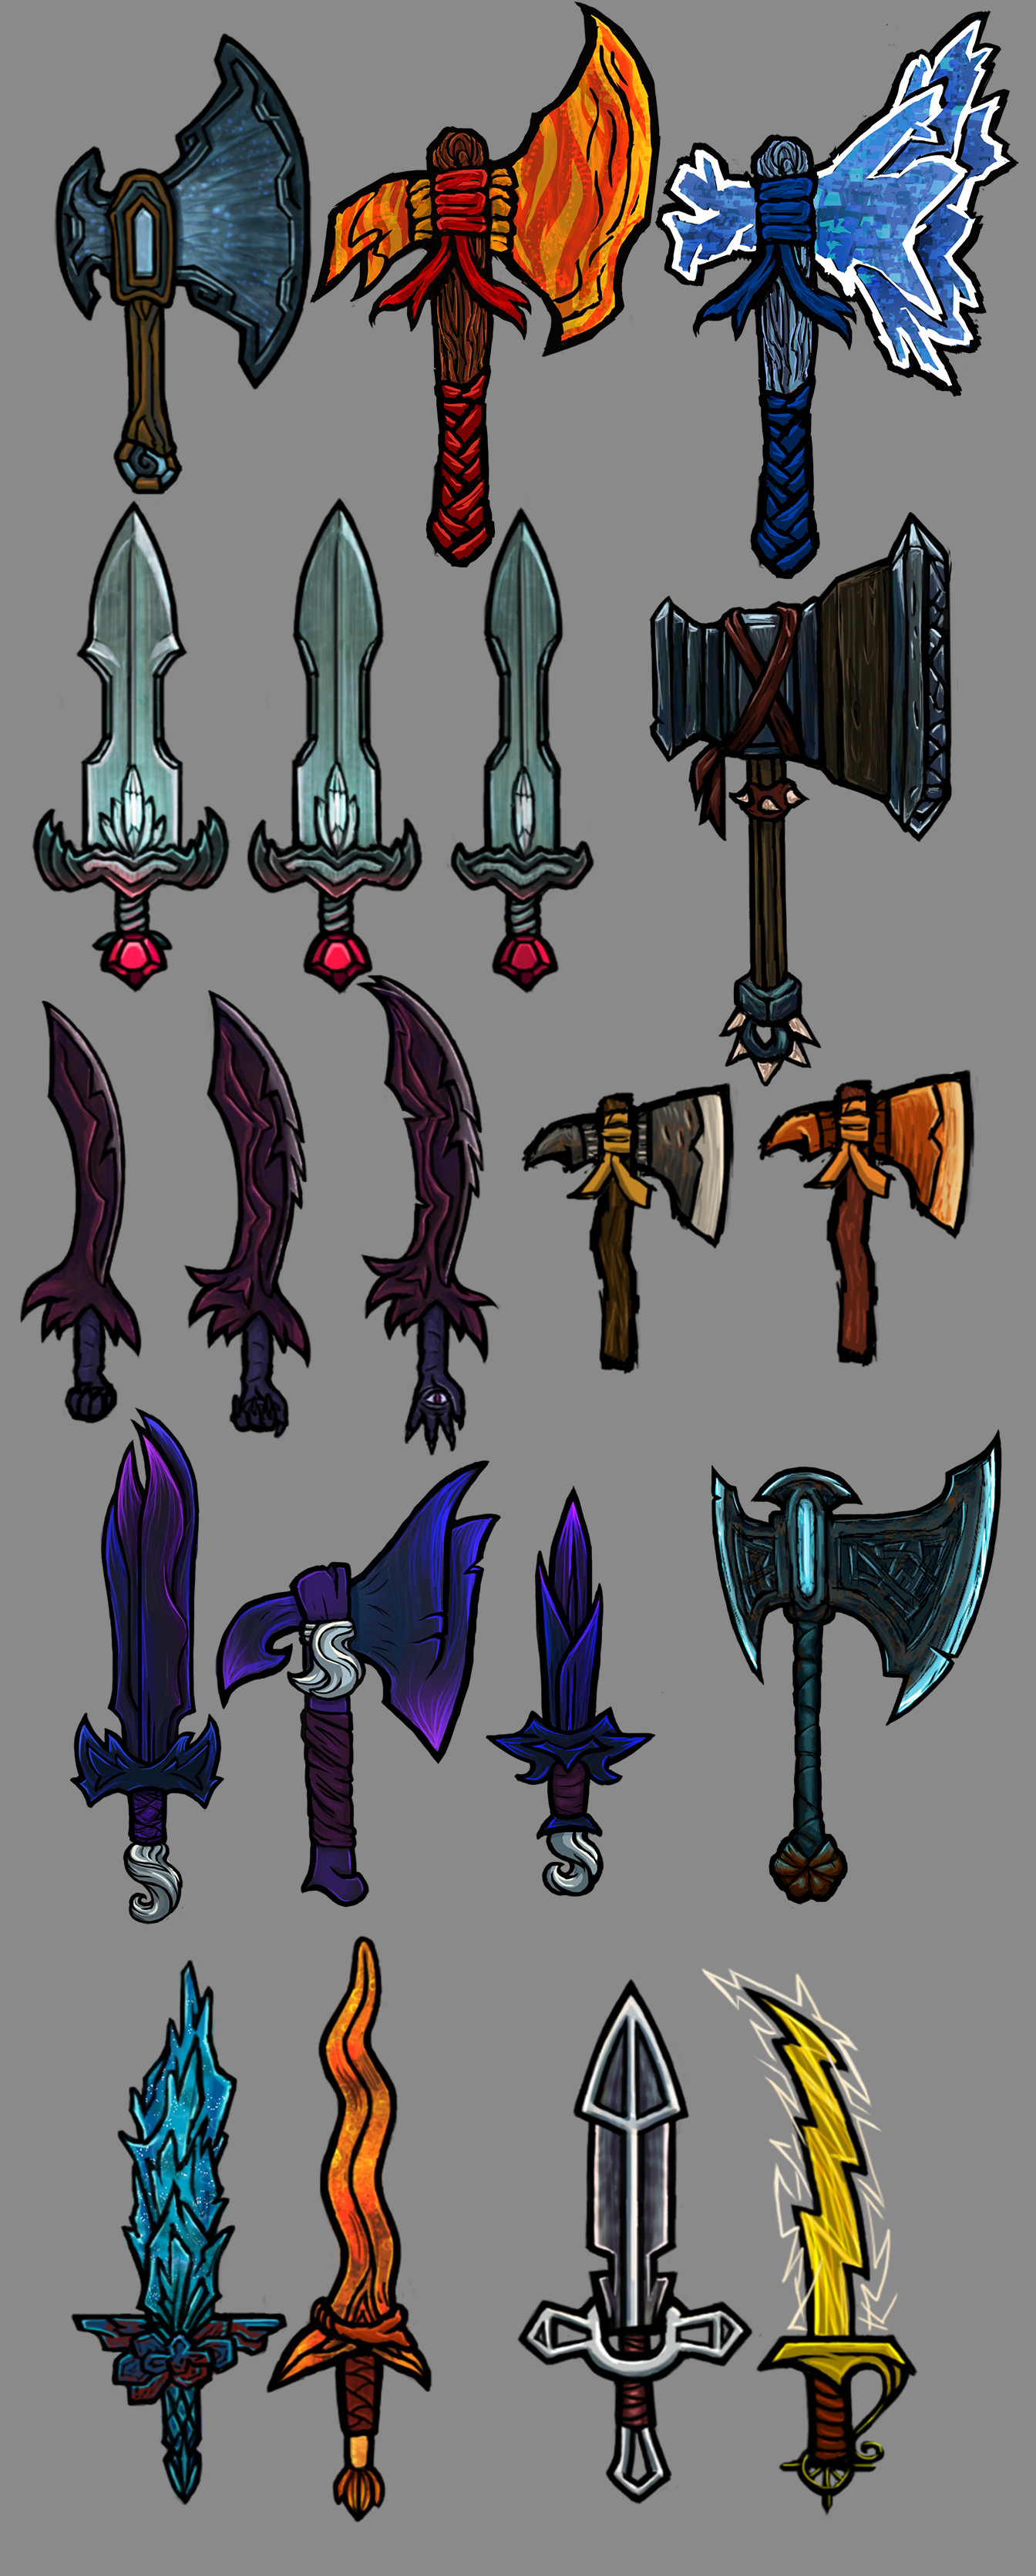 Vivien lulkowski weapons of hero